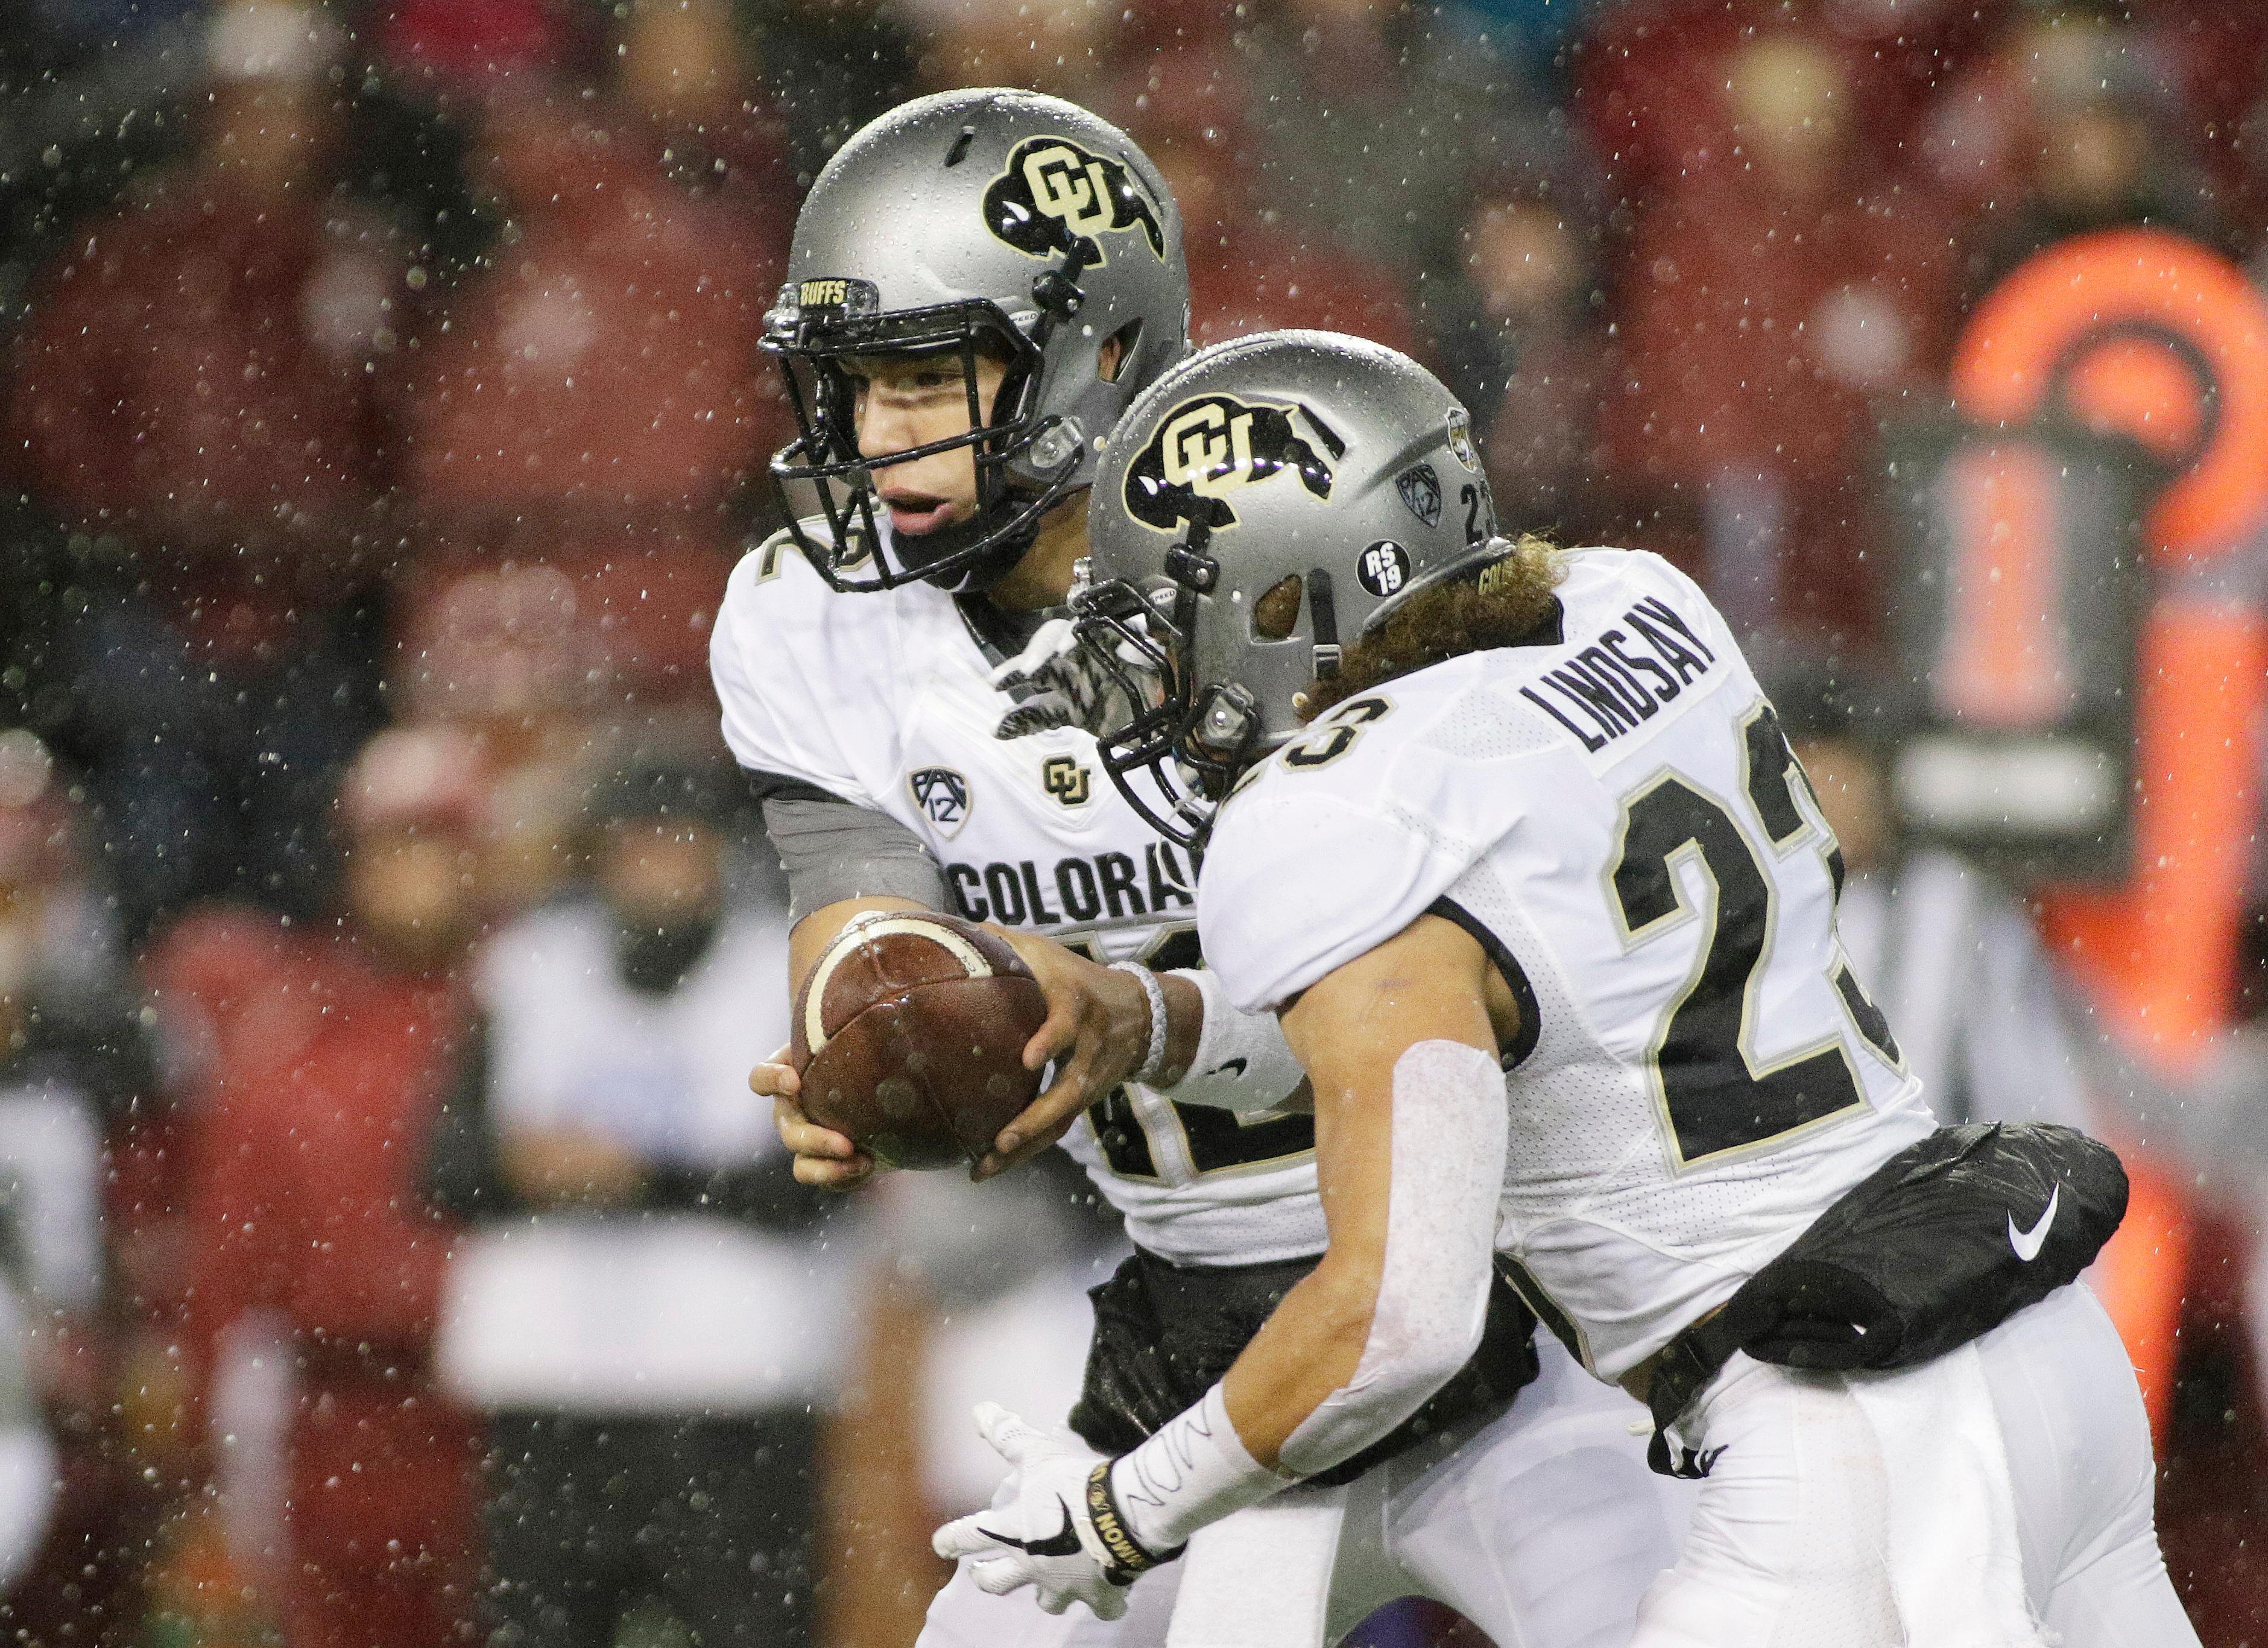 Colorado quarterback Steven Montez, left, hands the ball off to running back Phillip Lindsay (23) during the first half of an NCAA college football game against Washington State in Pullman, Wash., Saturday, Oct. 21, 2017. (AP Photo/Young Kwak)